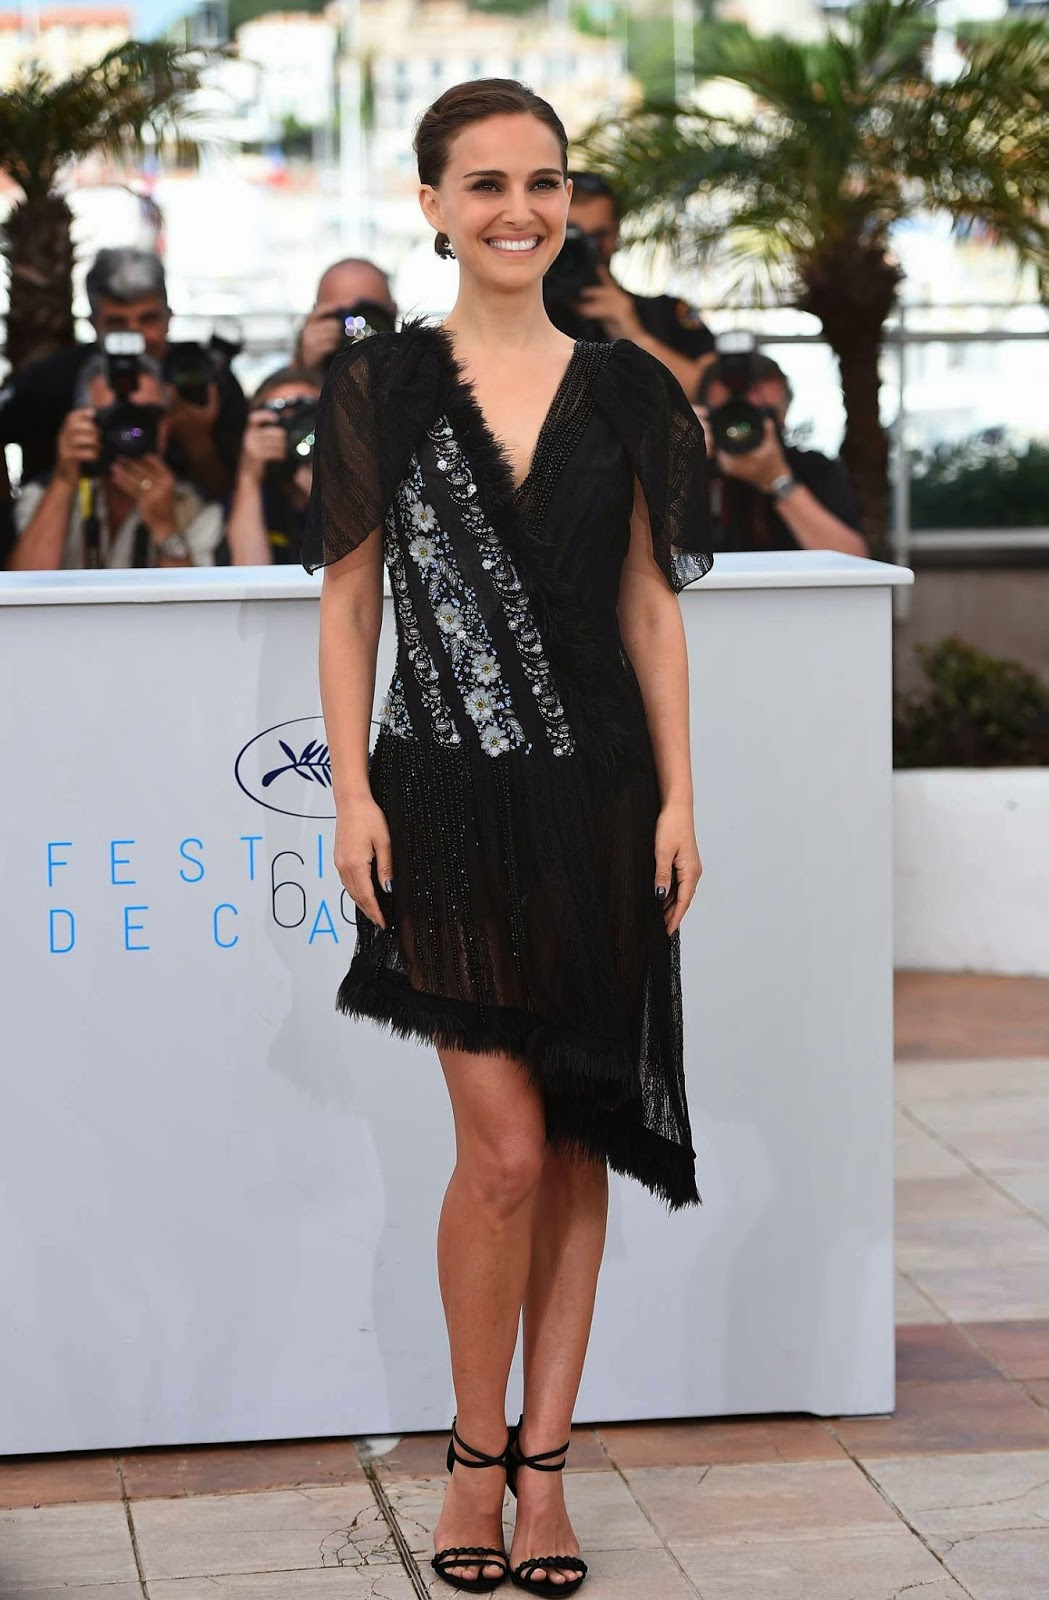 Natalie Portman in a sheer beaded dress at the 2015 Cannes Film Festival 'A Tale of Love and Darkness' photocall